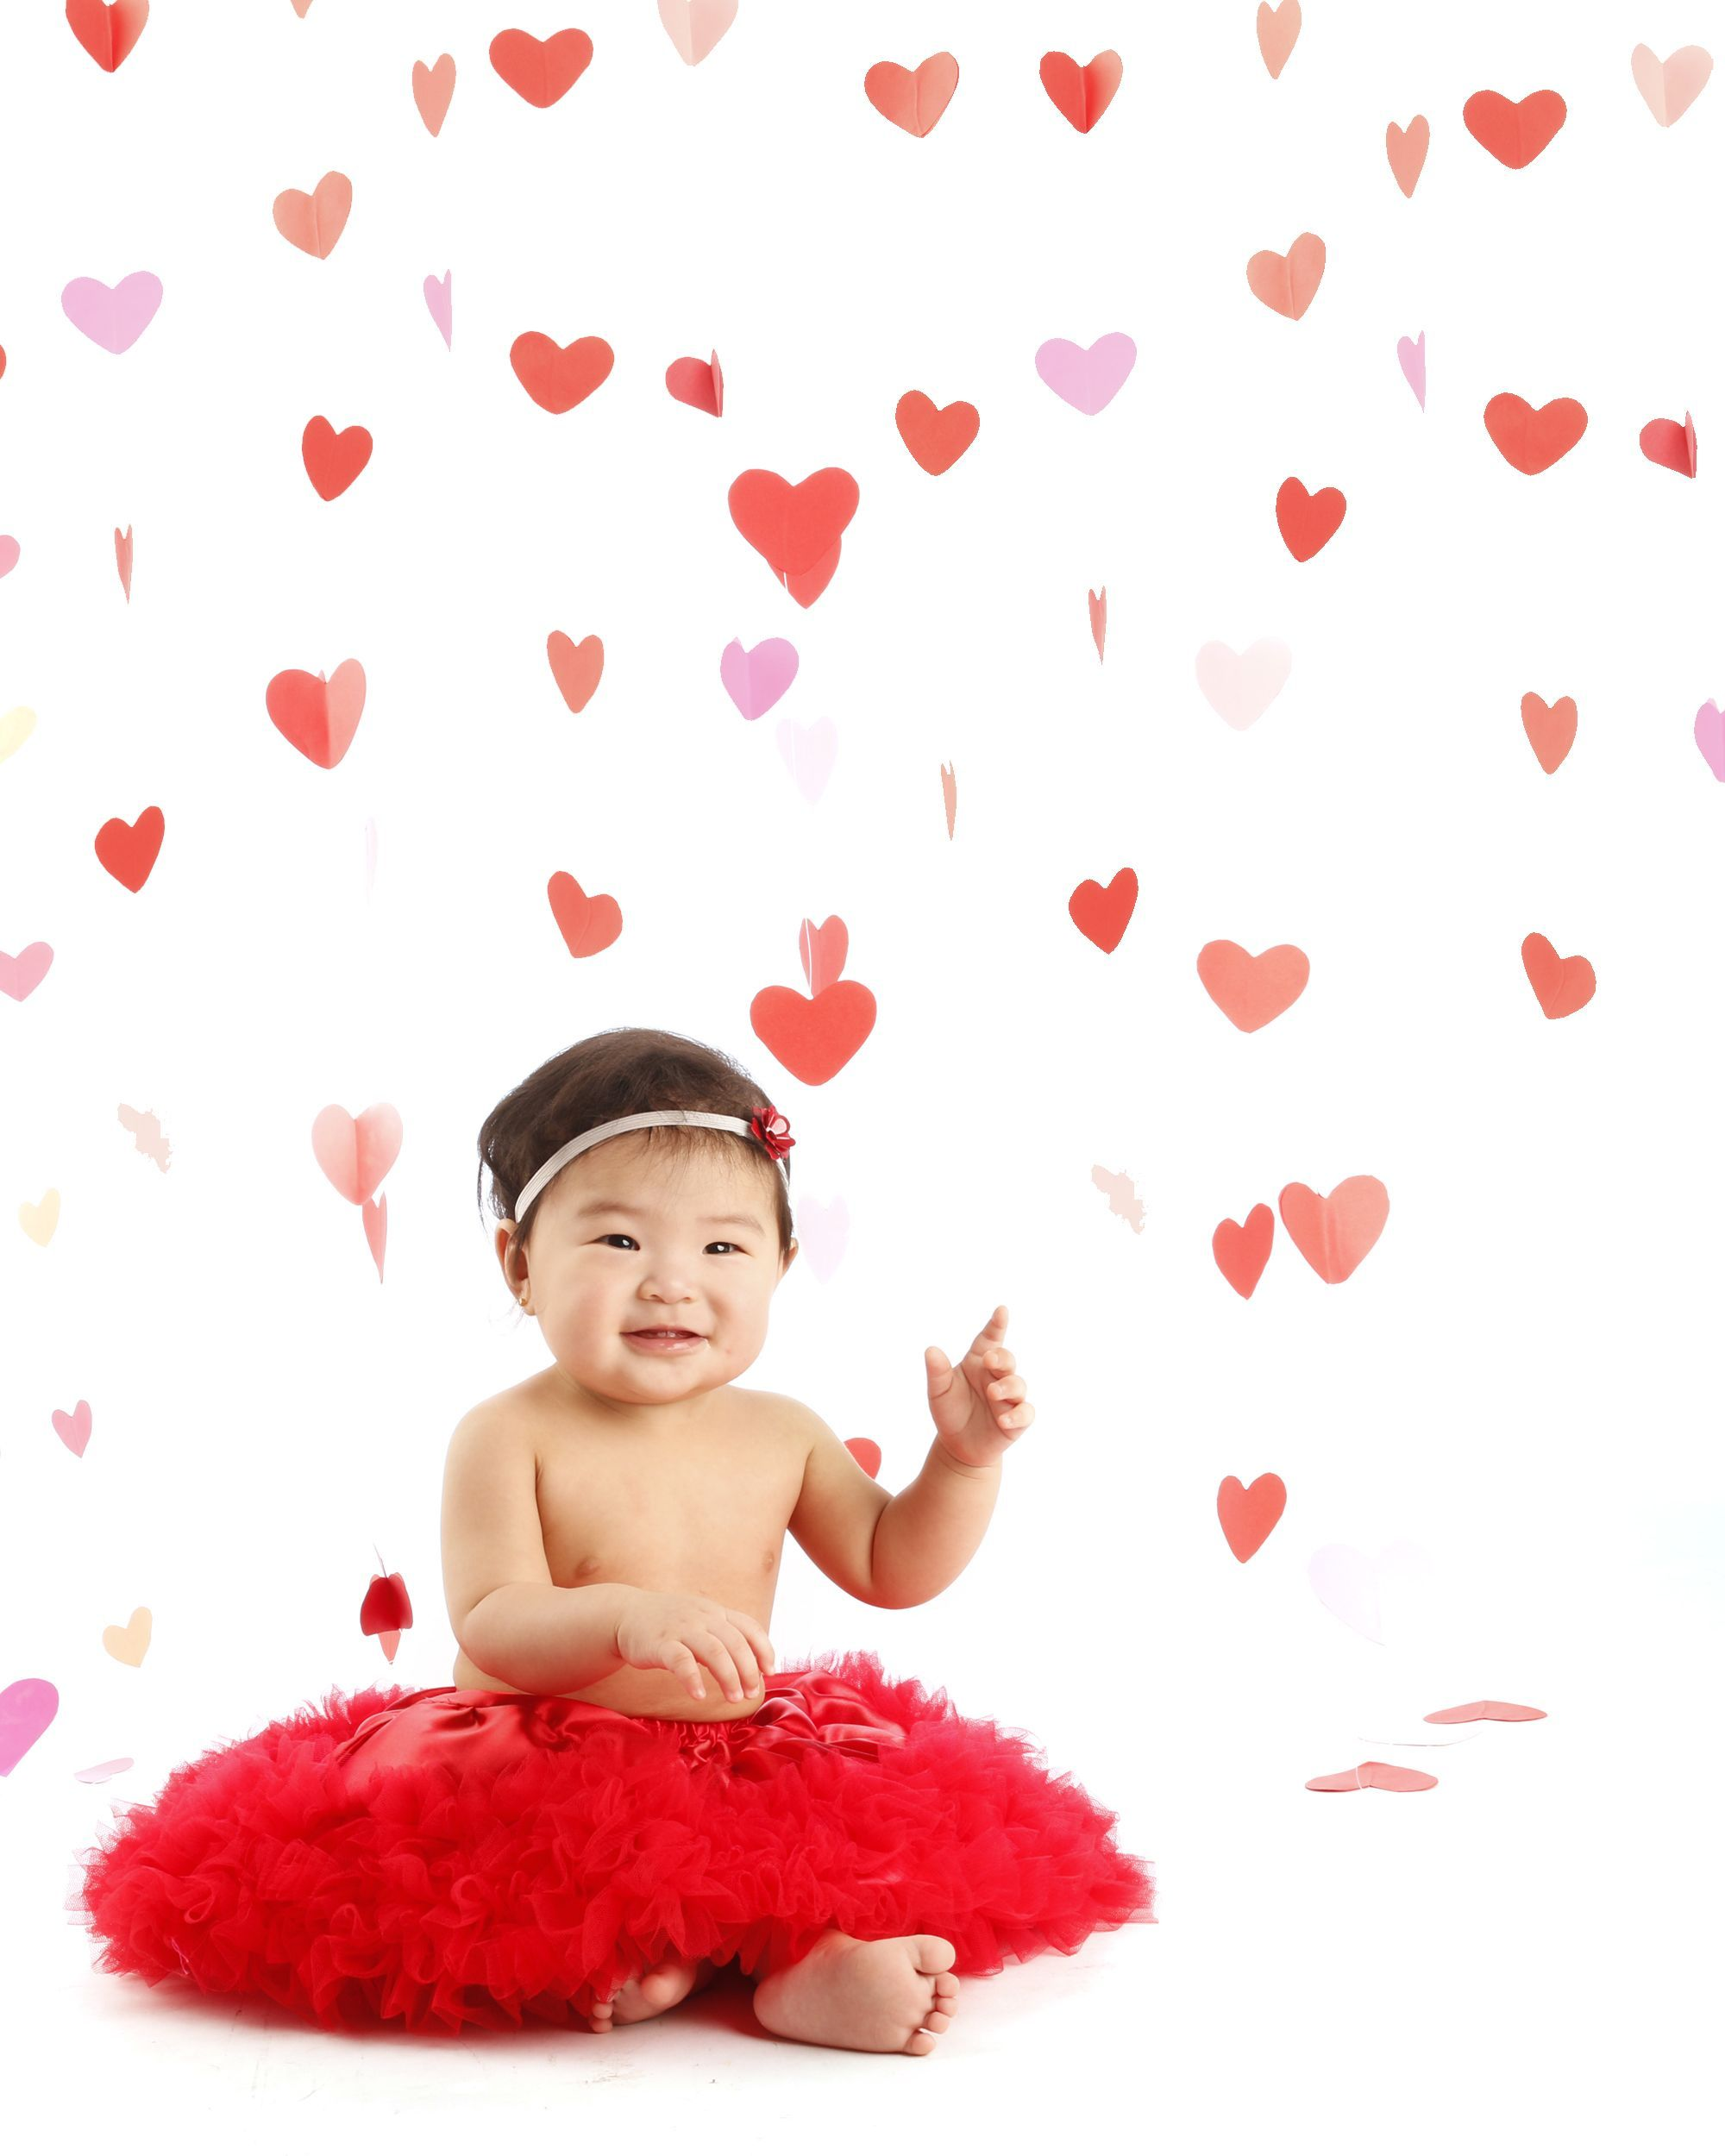 10 11 Months Old Baby At The Picture Company Picture Company 11 Month Old Baby Baby Photoshoot